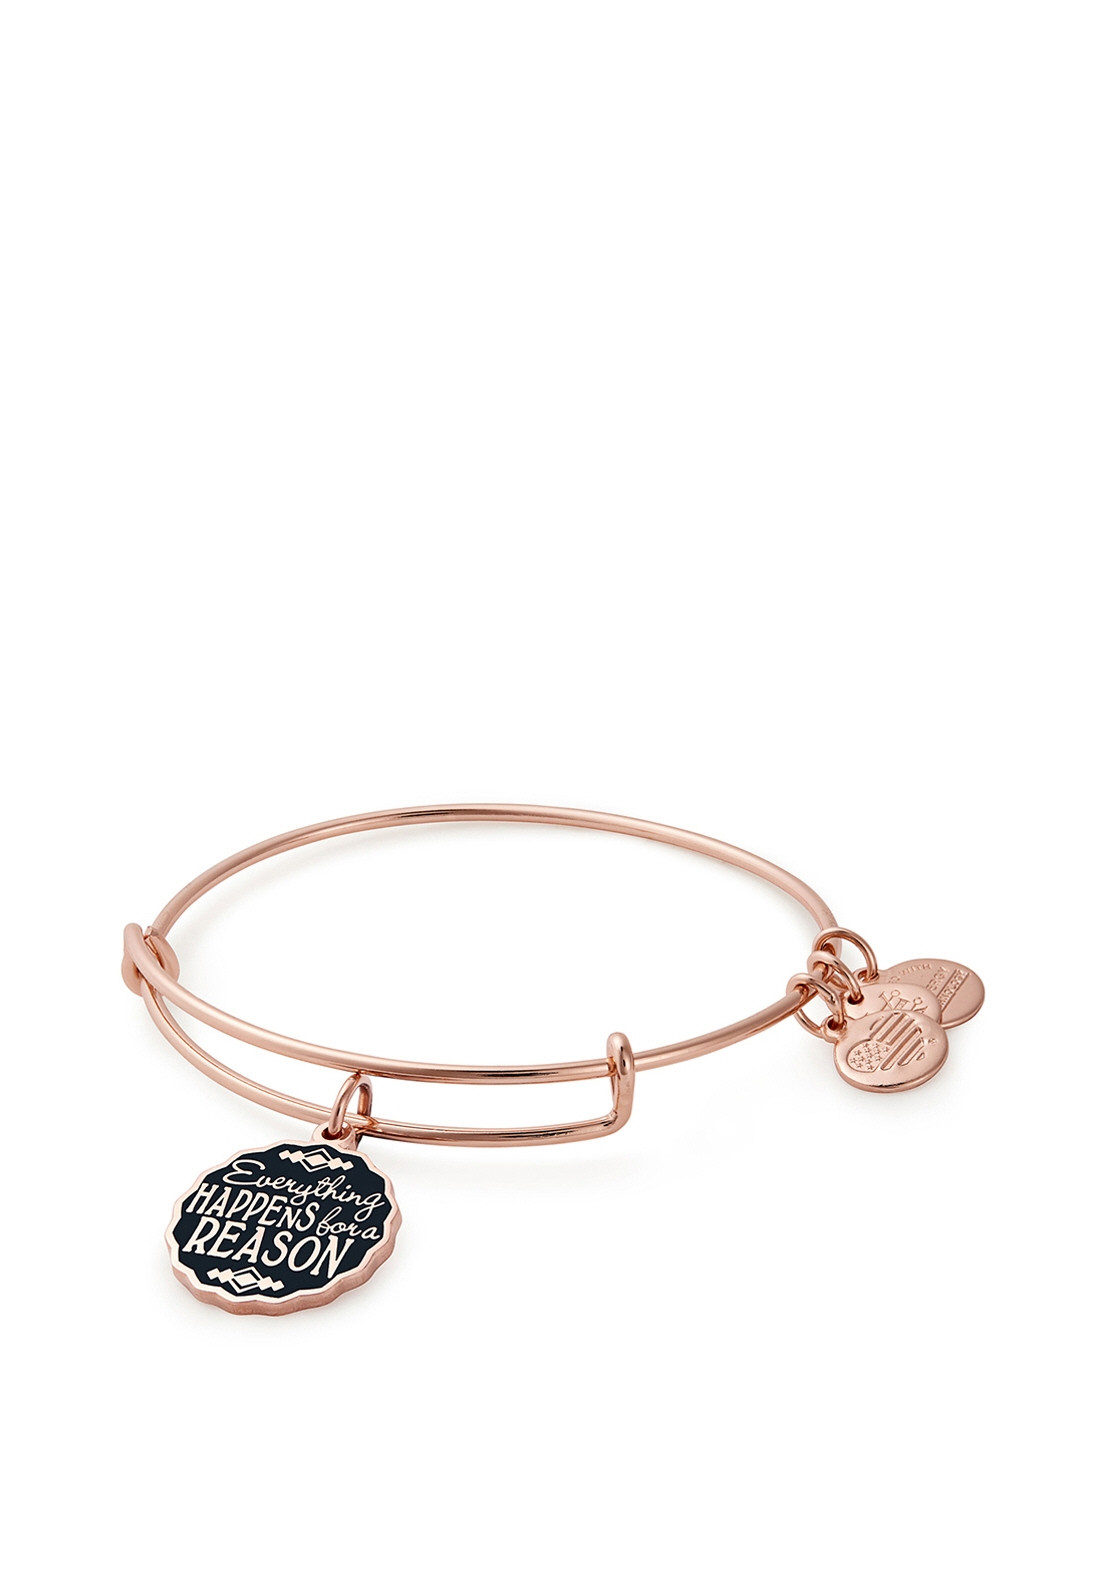 9c2246e305074 Alex and Ani Everything Happens For A Reason Charm Bangle, Rose Gold